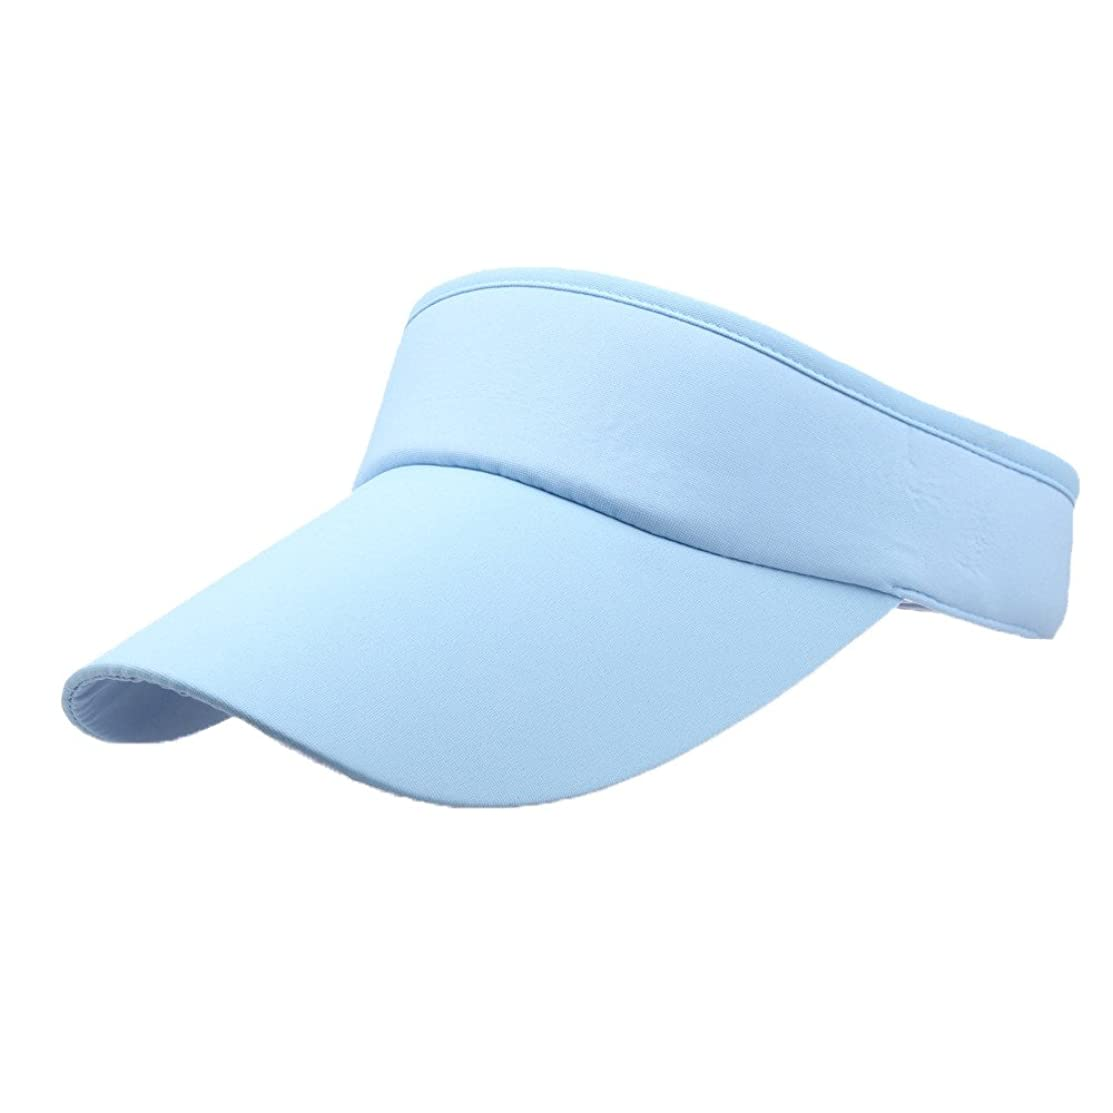 Toponly Sun Hats Unisex Wide Brim UV Protection Summer Beach Packable Visor